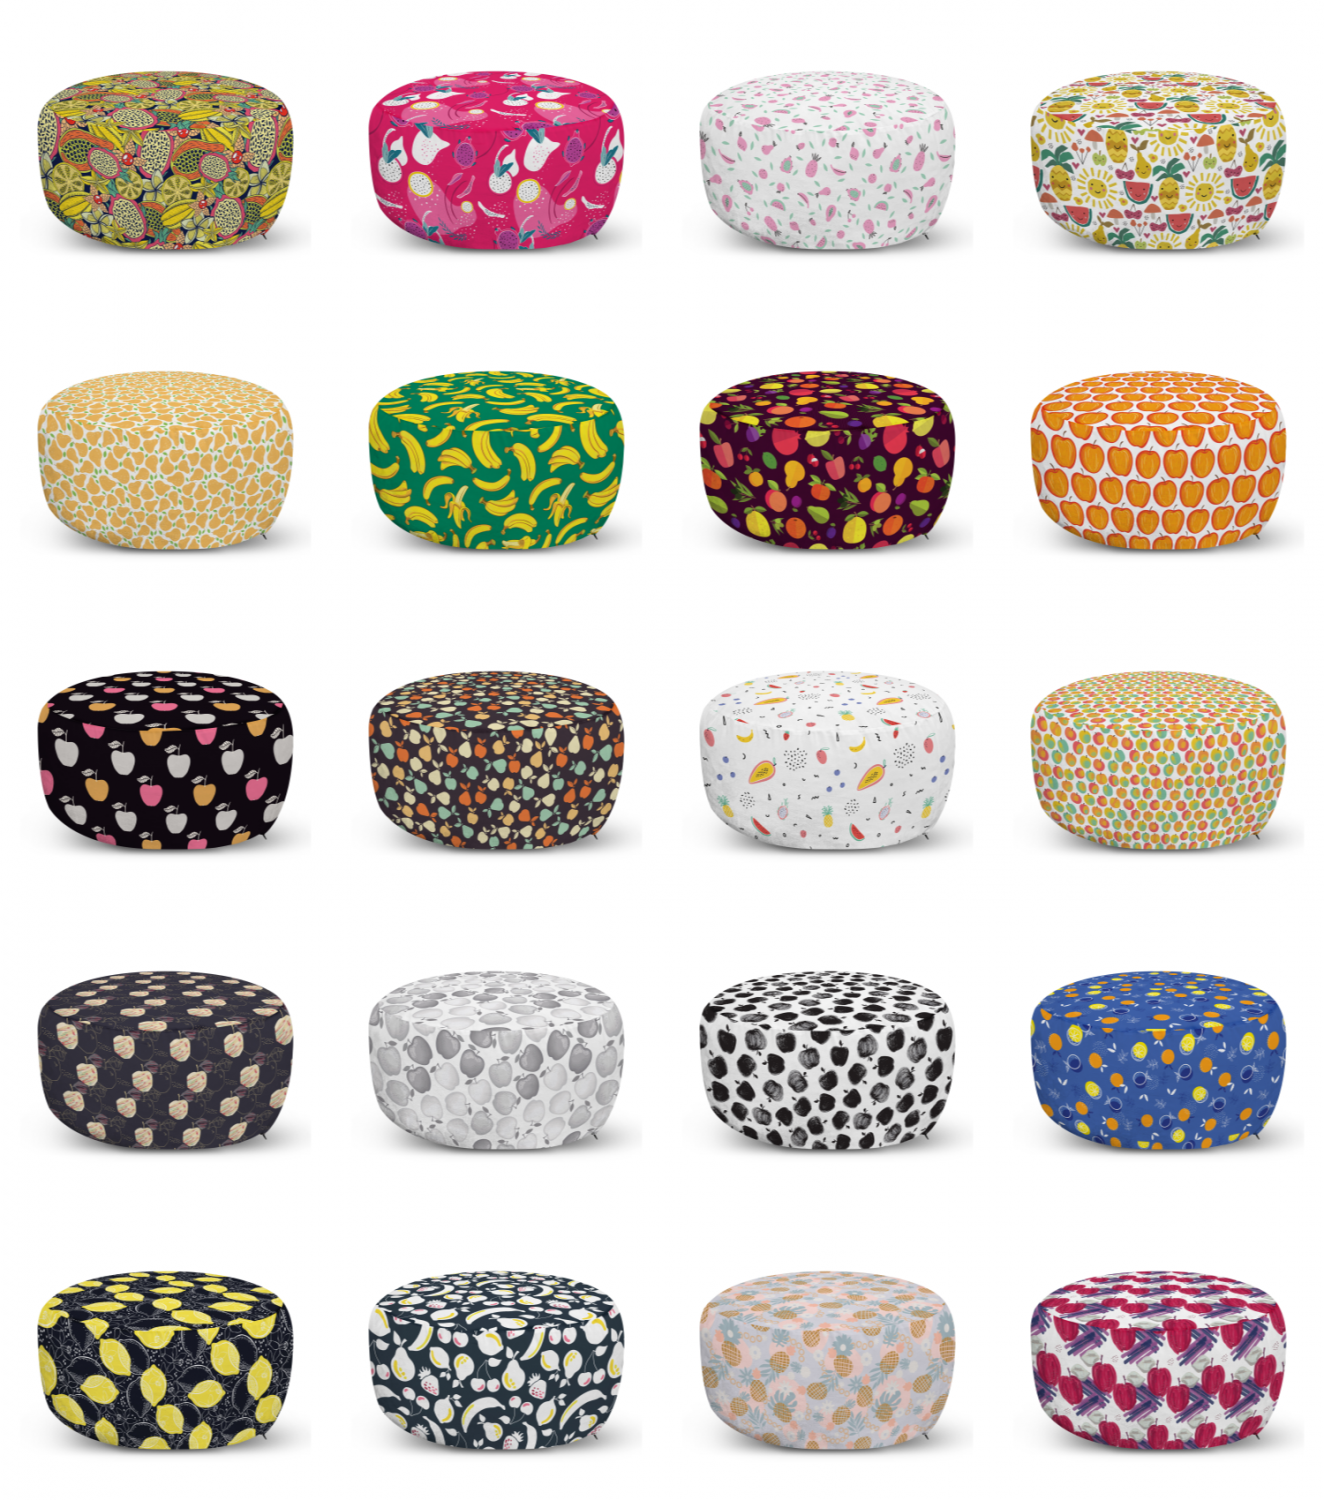 ambesonne print fruits ottoman pouf decor soft foot rest & removable cover